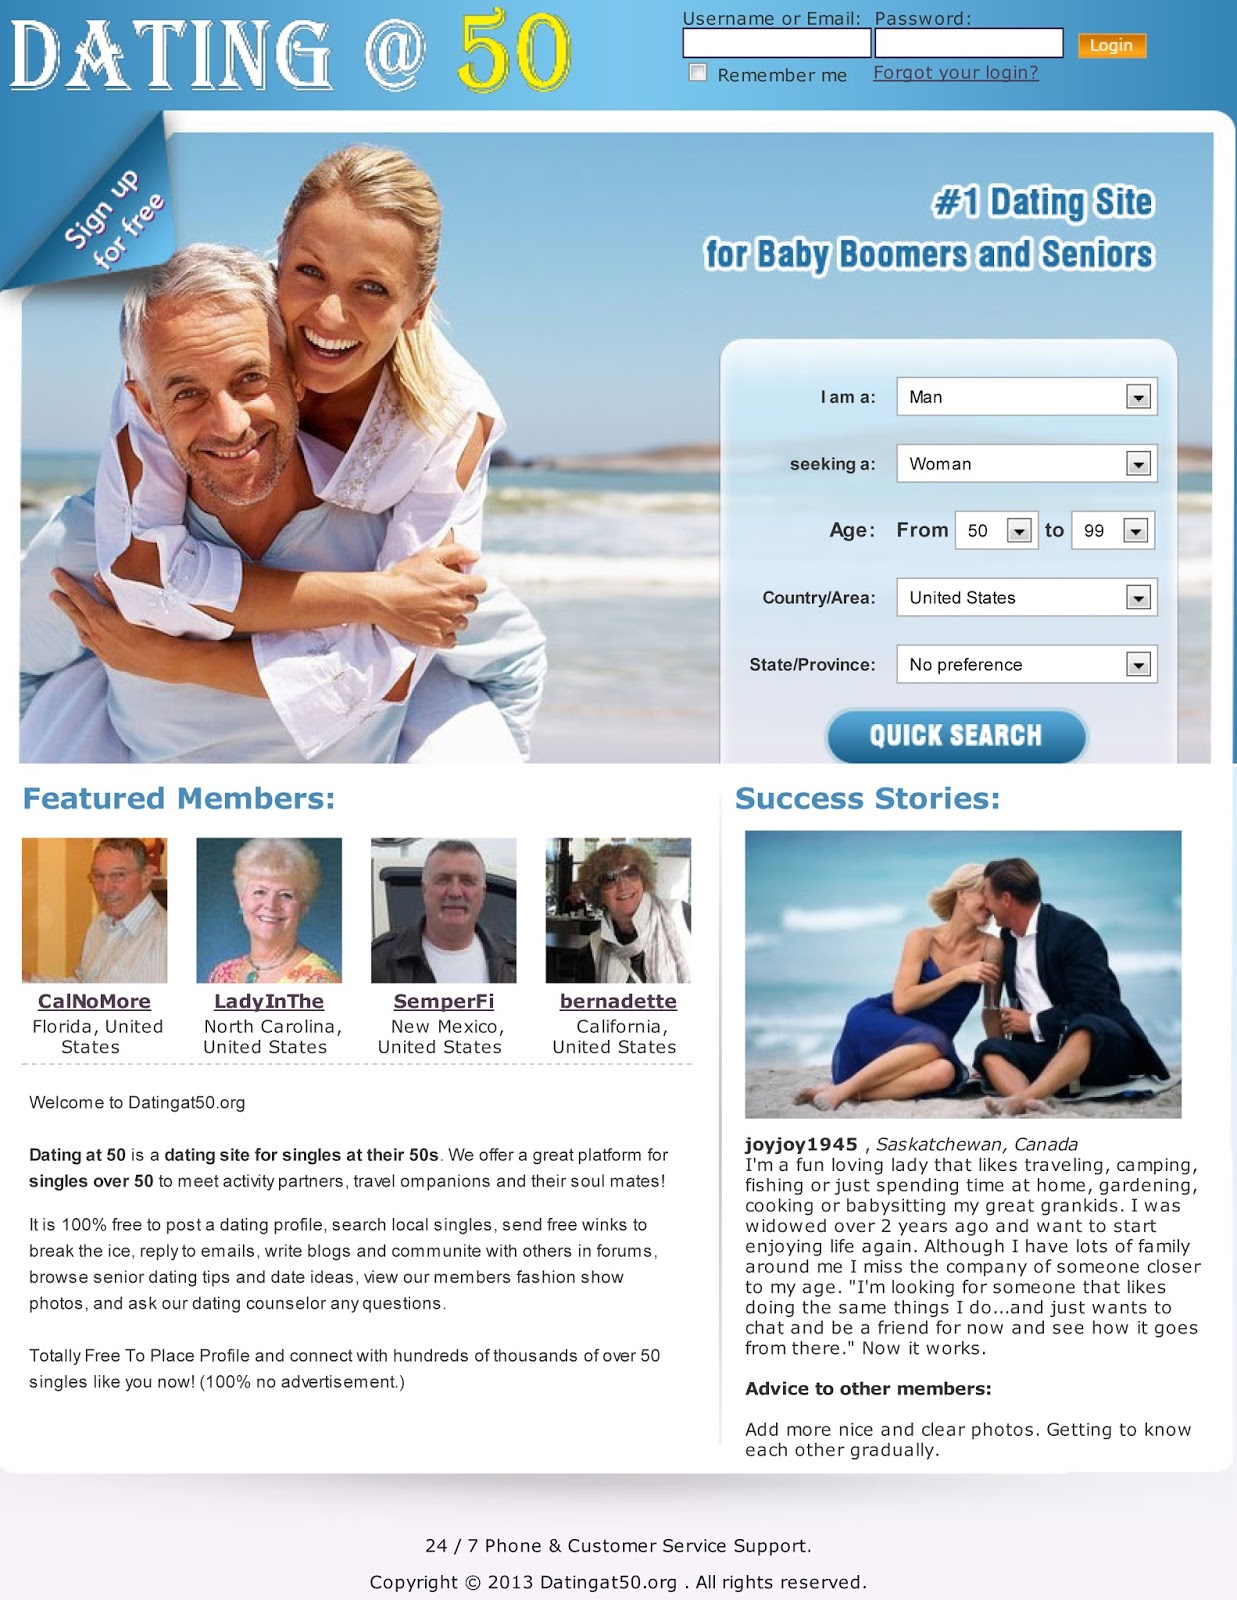 Dating website nationality / How do you start a matchmaking business